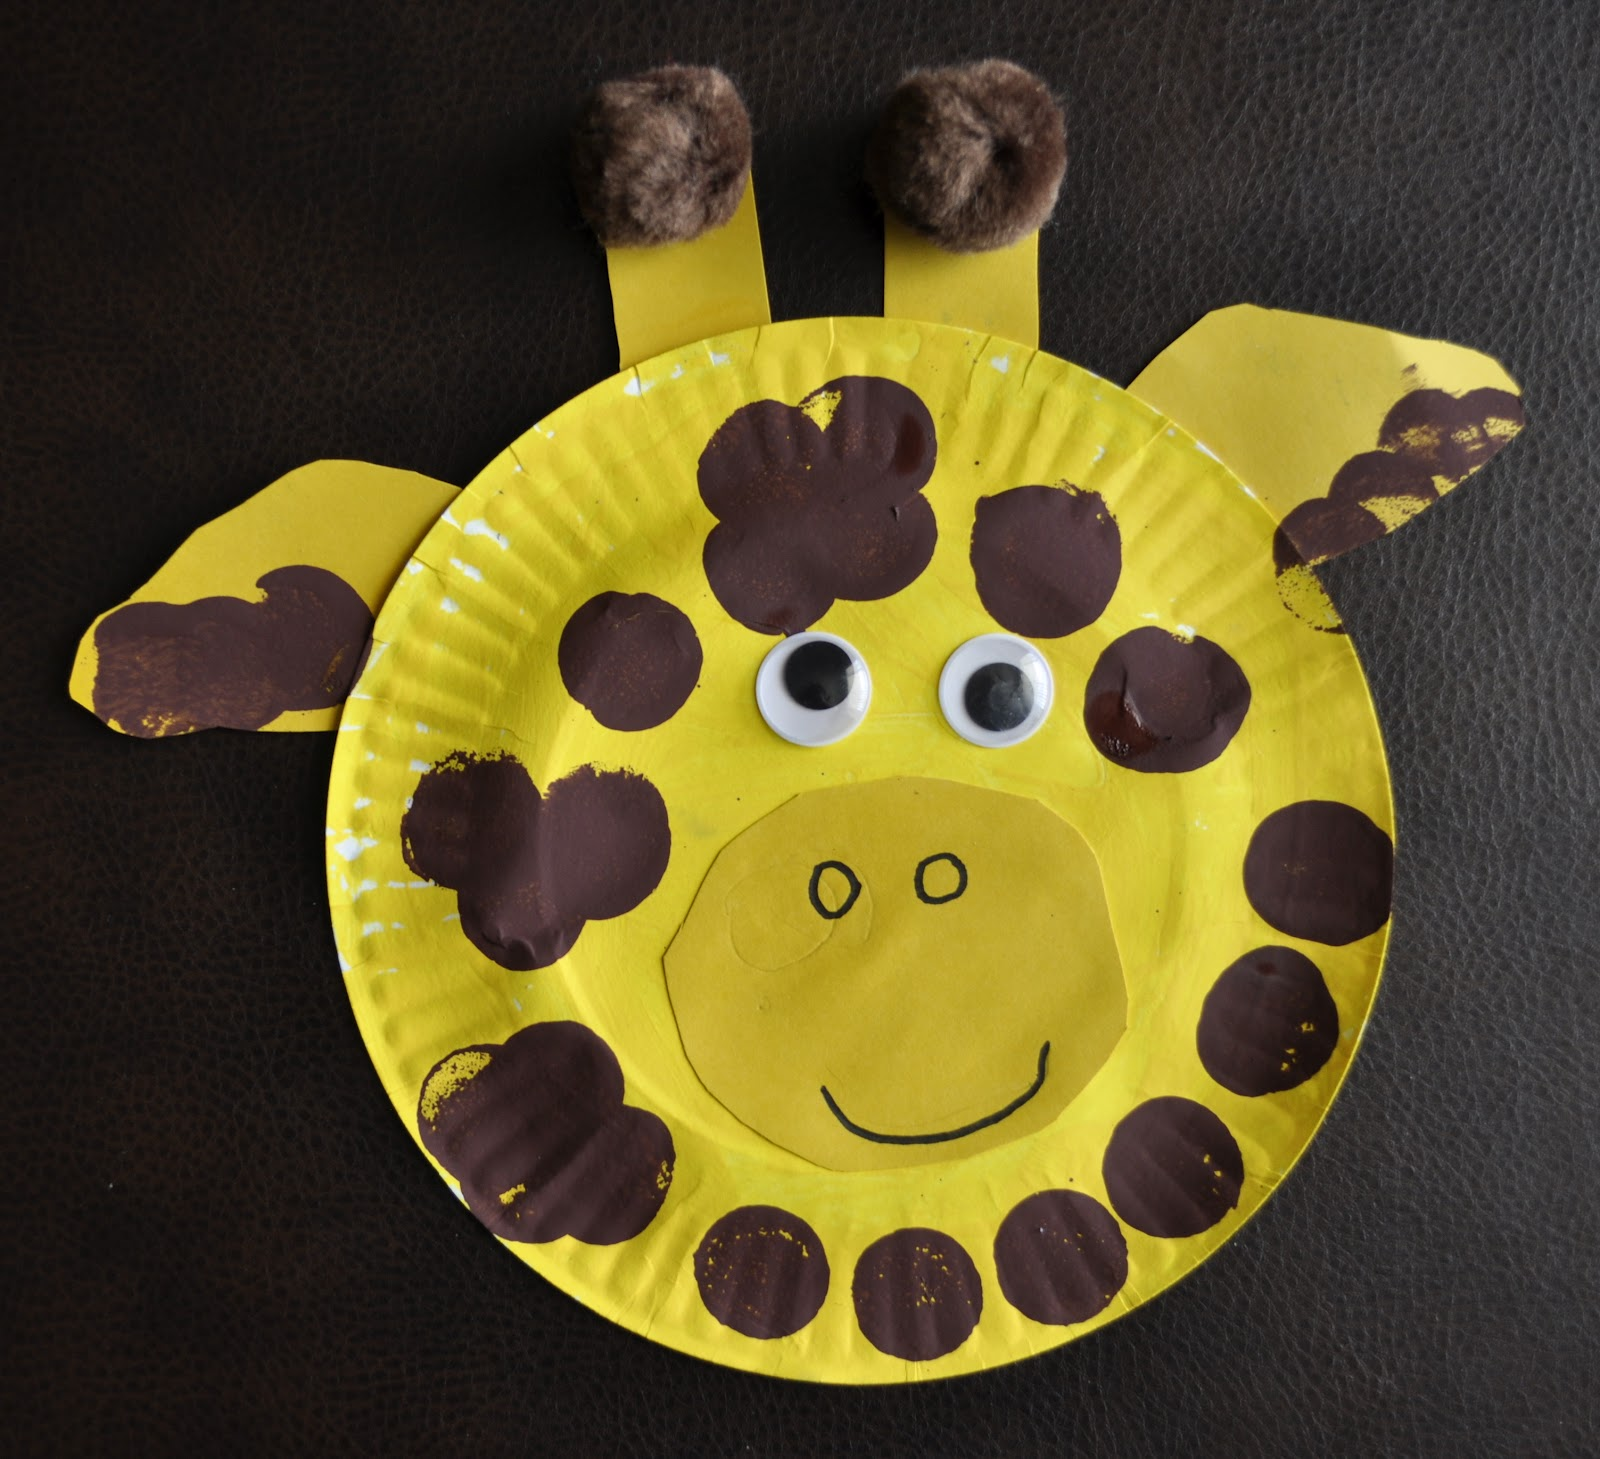 Our paper plate giraffe was so simple and fun to make. & Paper Plate Giraffe ~ Sheu0027s Crafty